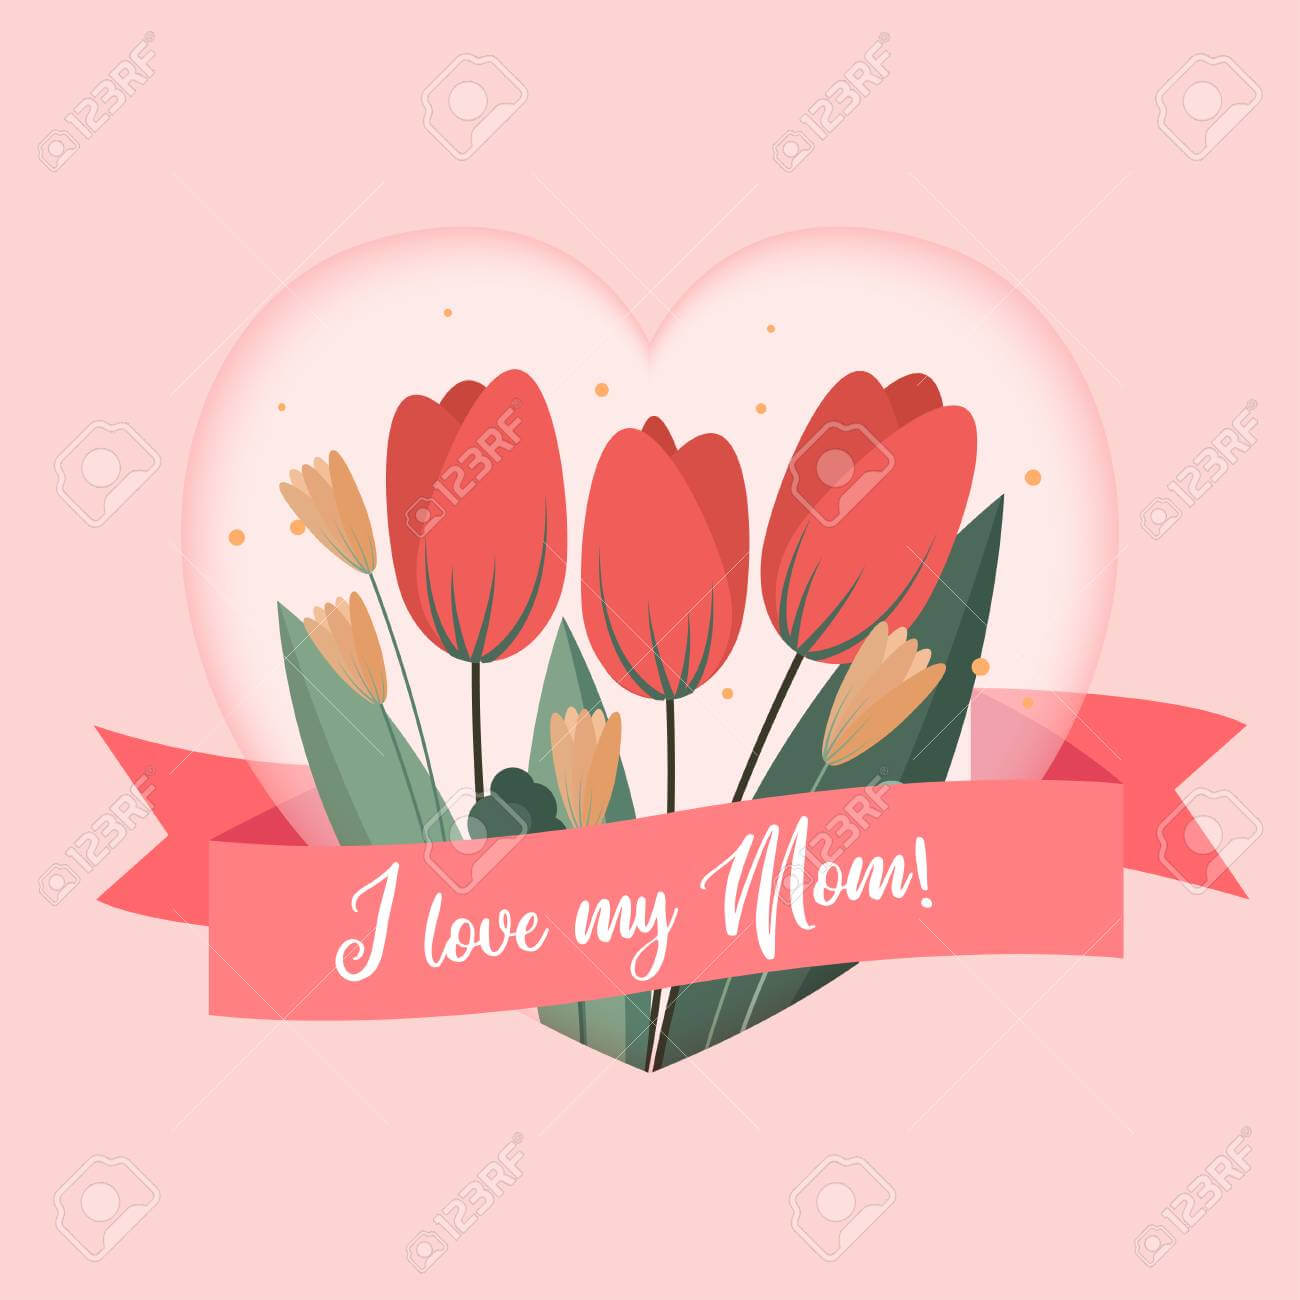 I Love My Mom Greetings Card Template. Background Design To Mothers.. pertaining to Mom Birthday Card Template